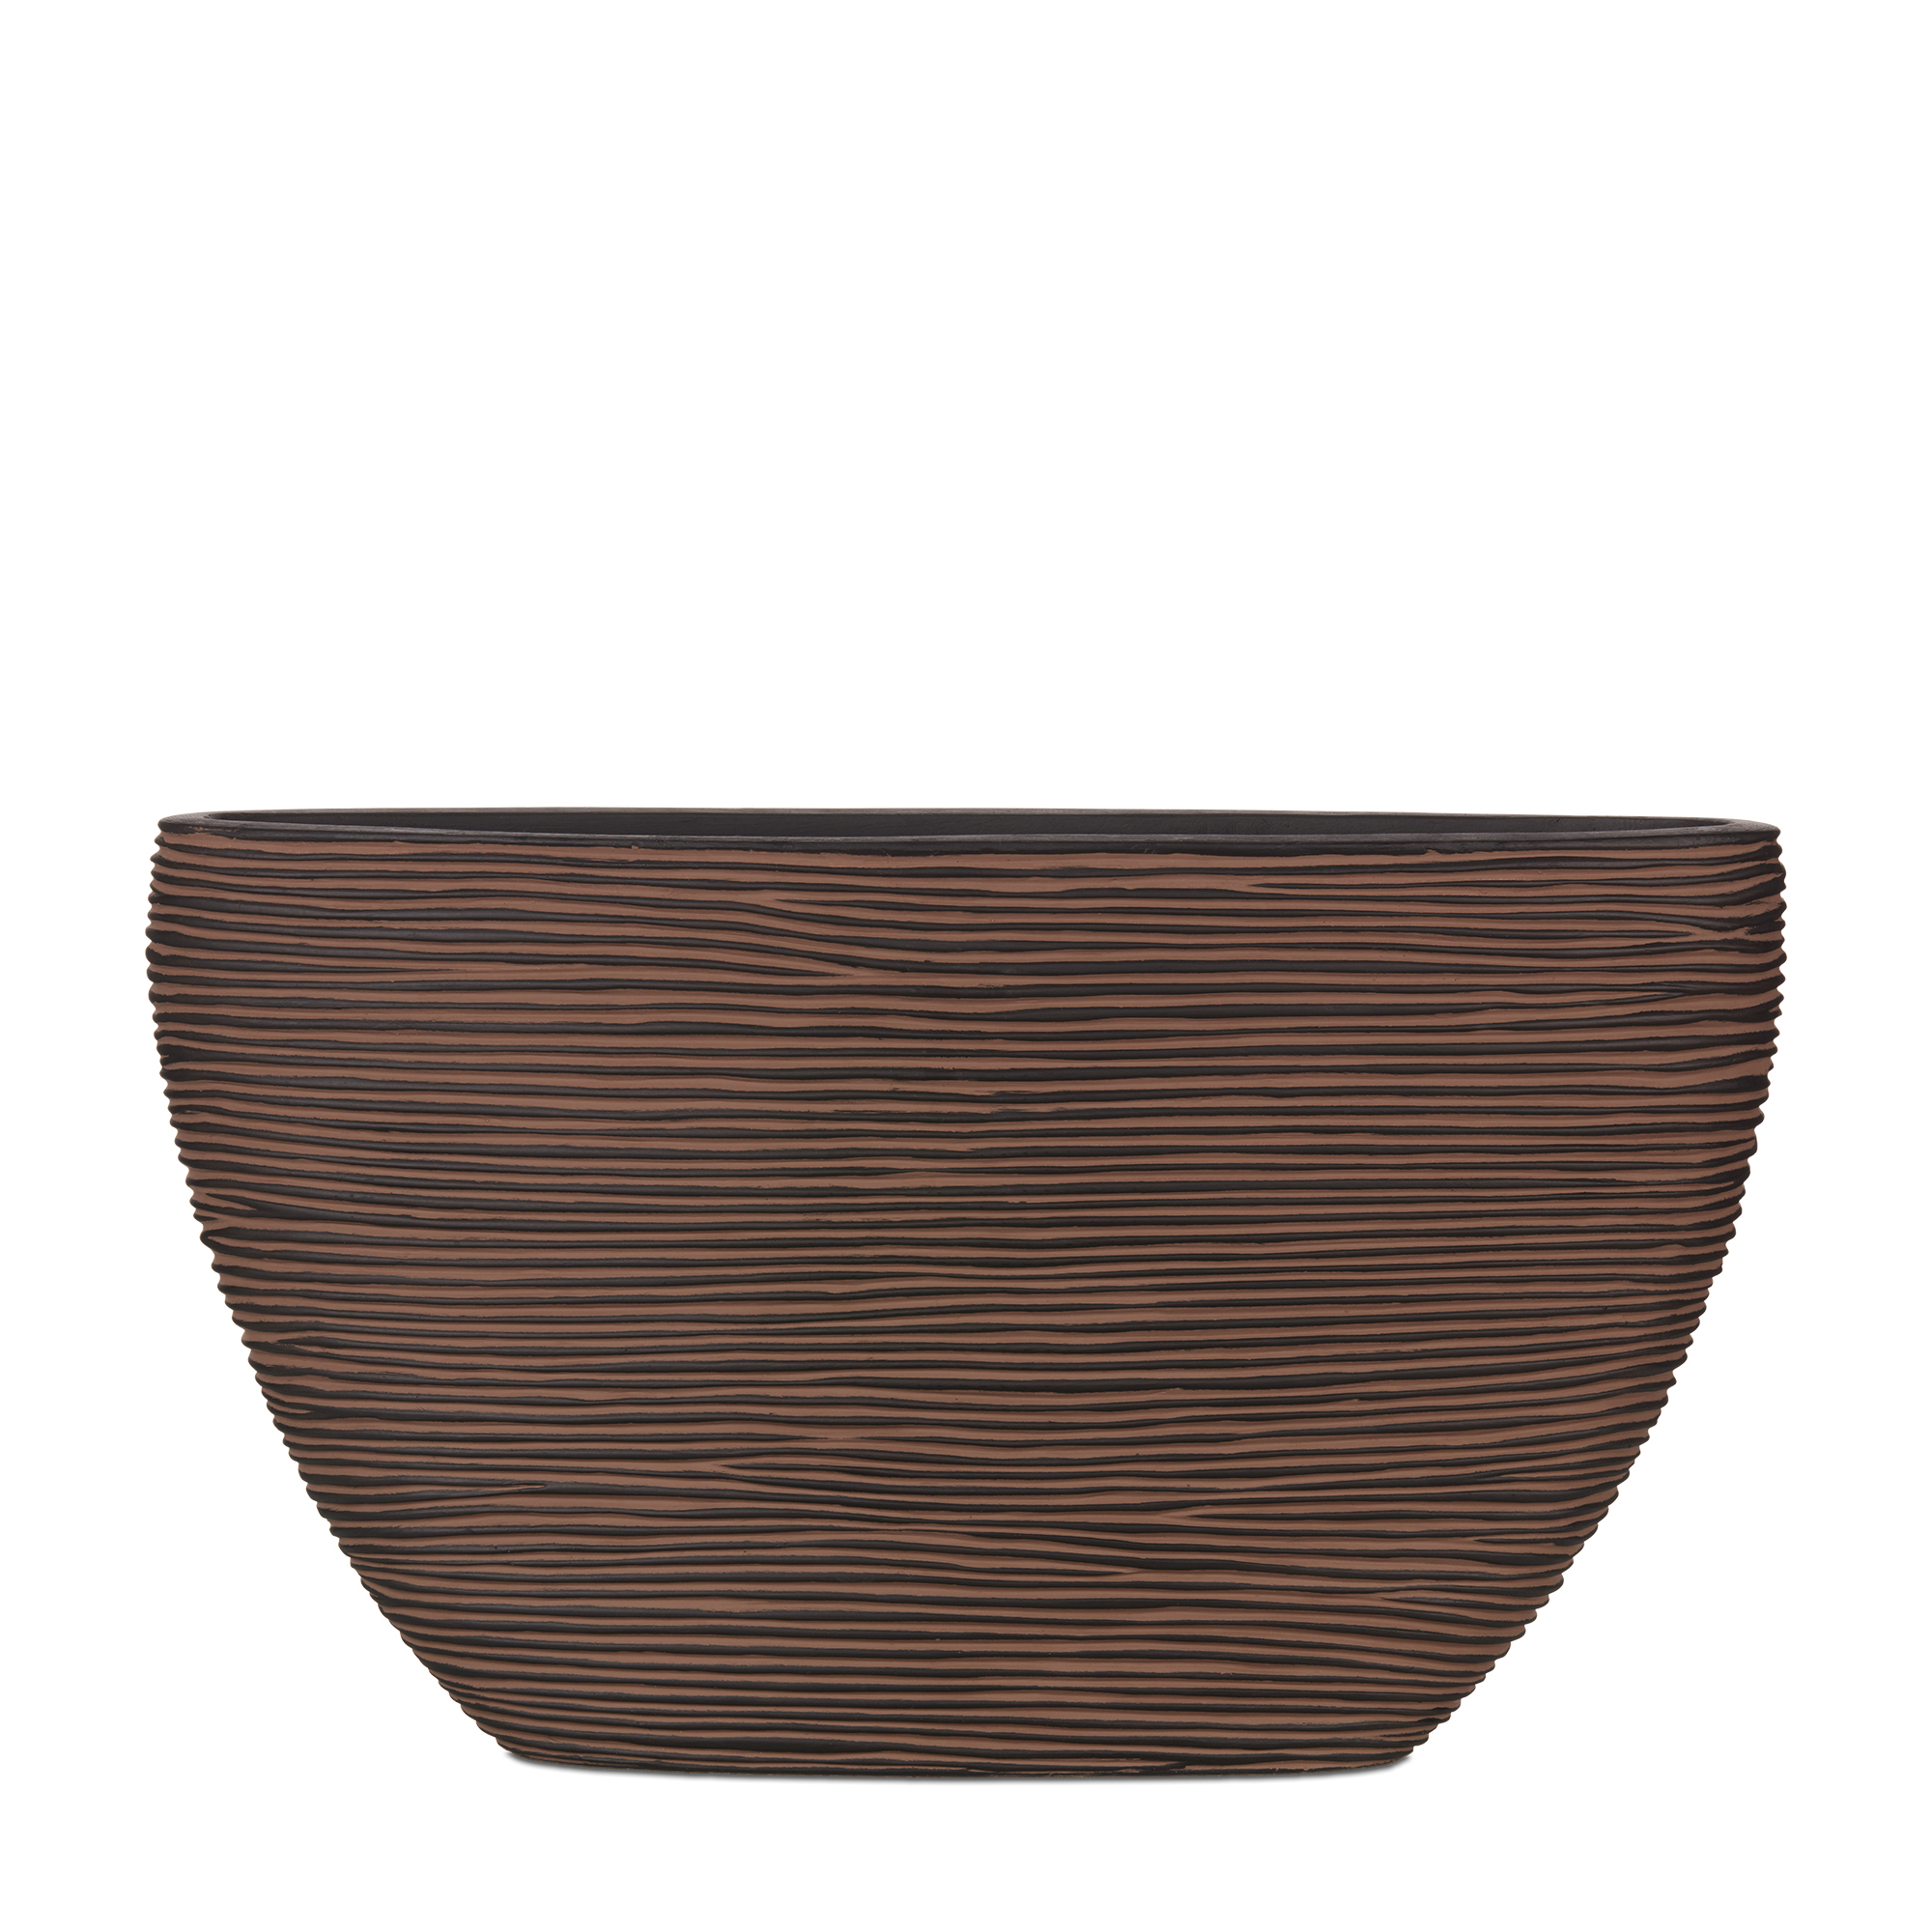 Verbazingwekkend Planter Oval Rib Indoor - Capi Europe GN-22